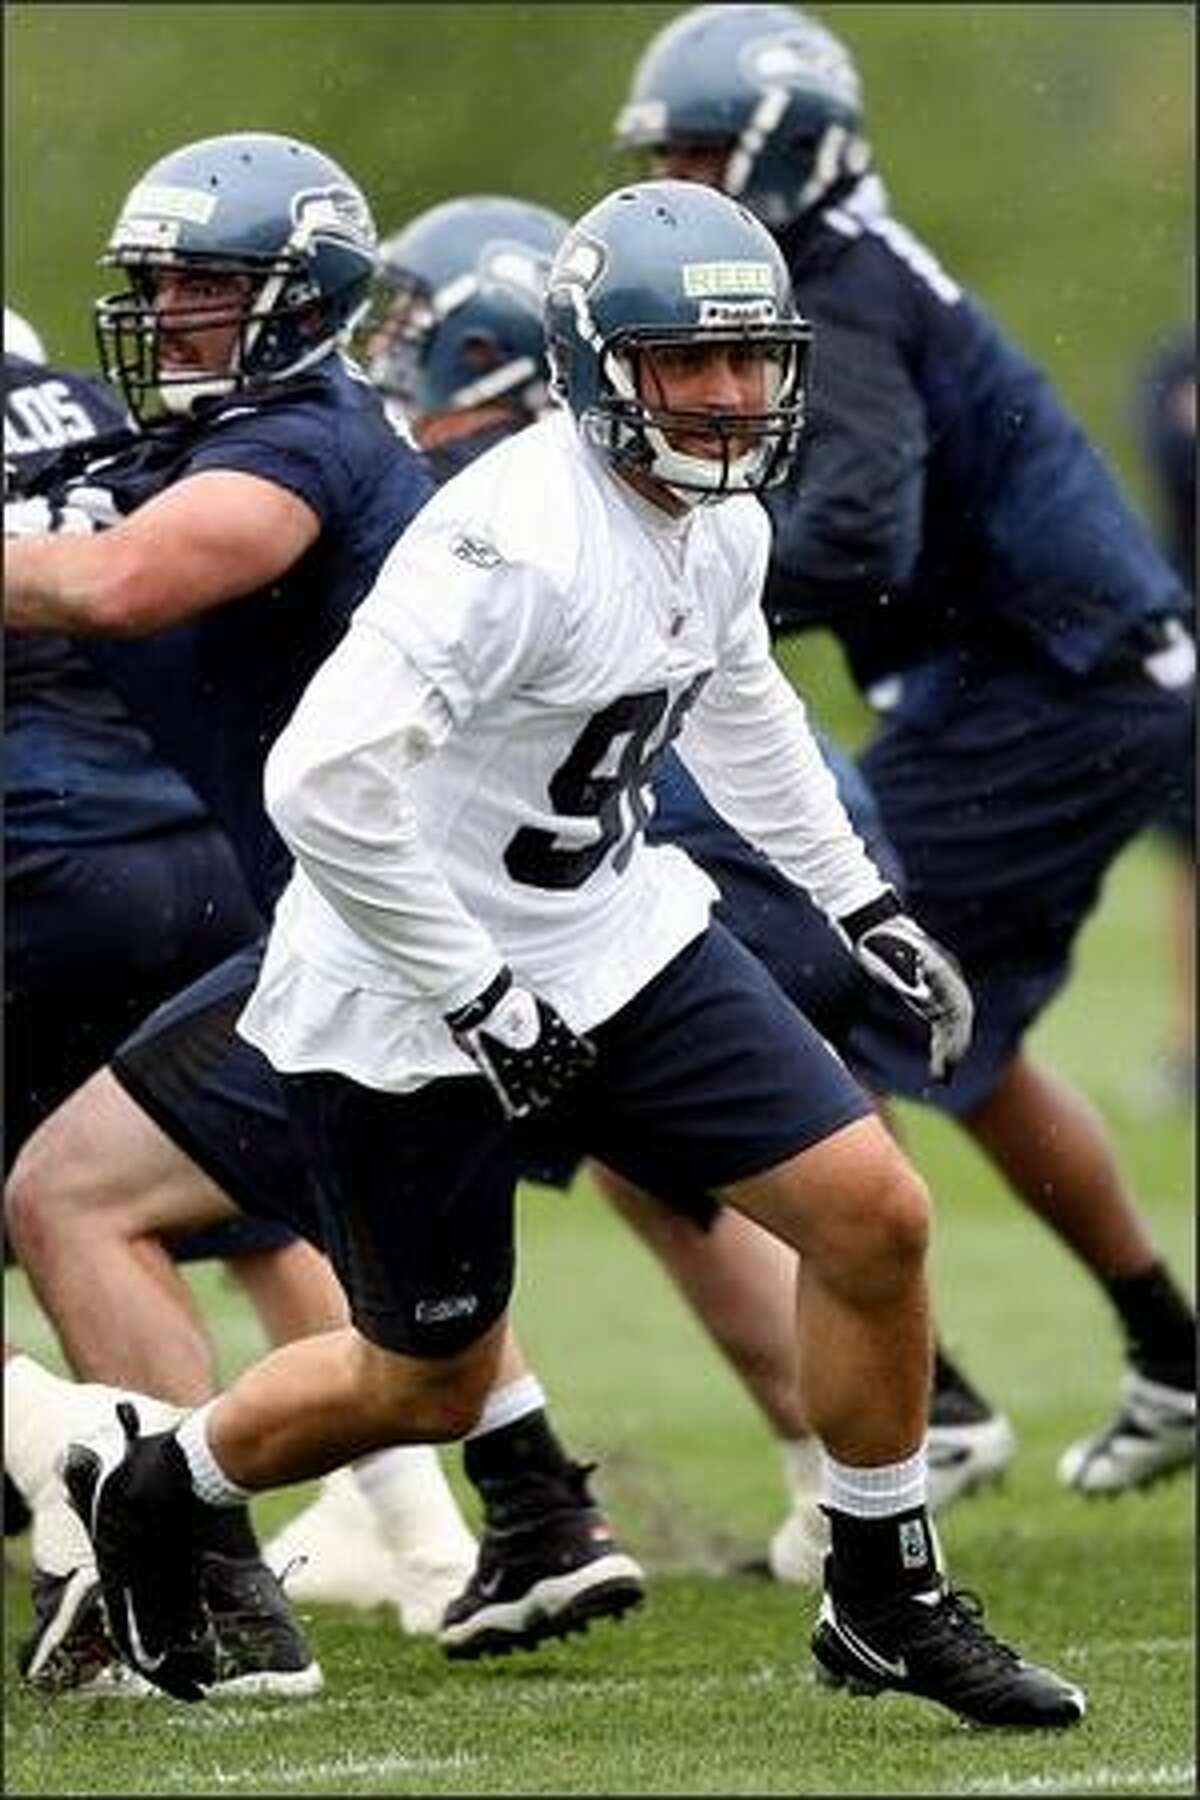 Defensive end Nick Reed runs drills during Seahawks minicamp May 2. Reed wasn't invited to the NFL Combine despite getting 25 sacks in his final two seasons at Oregon.